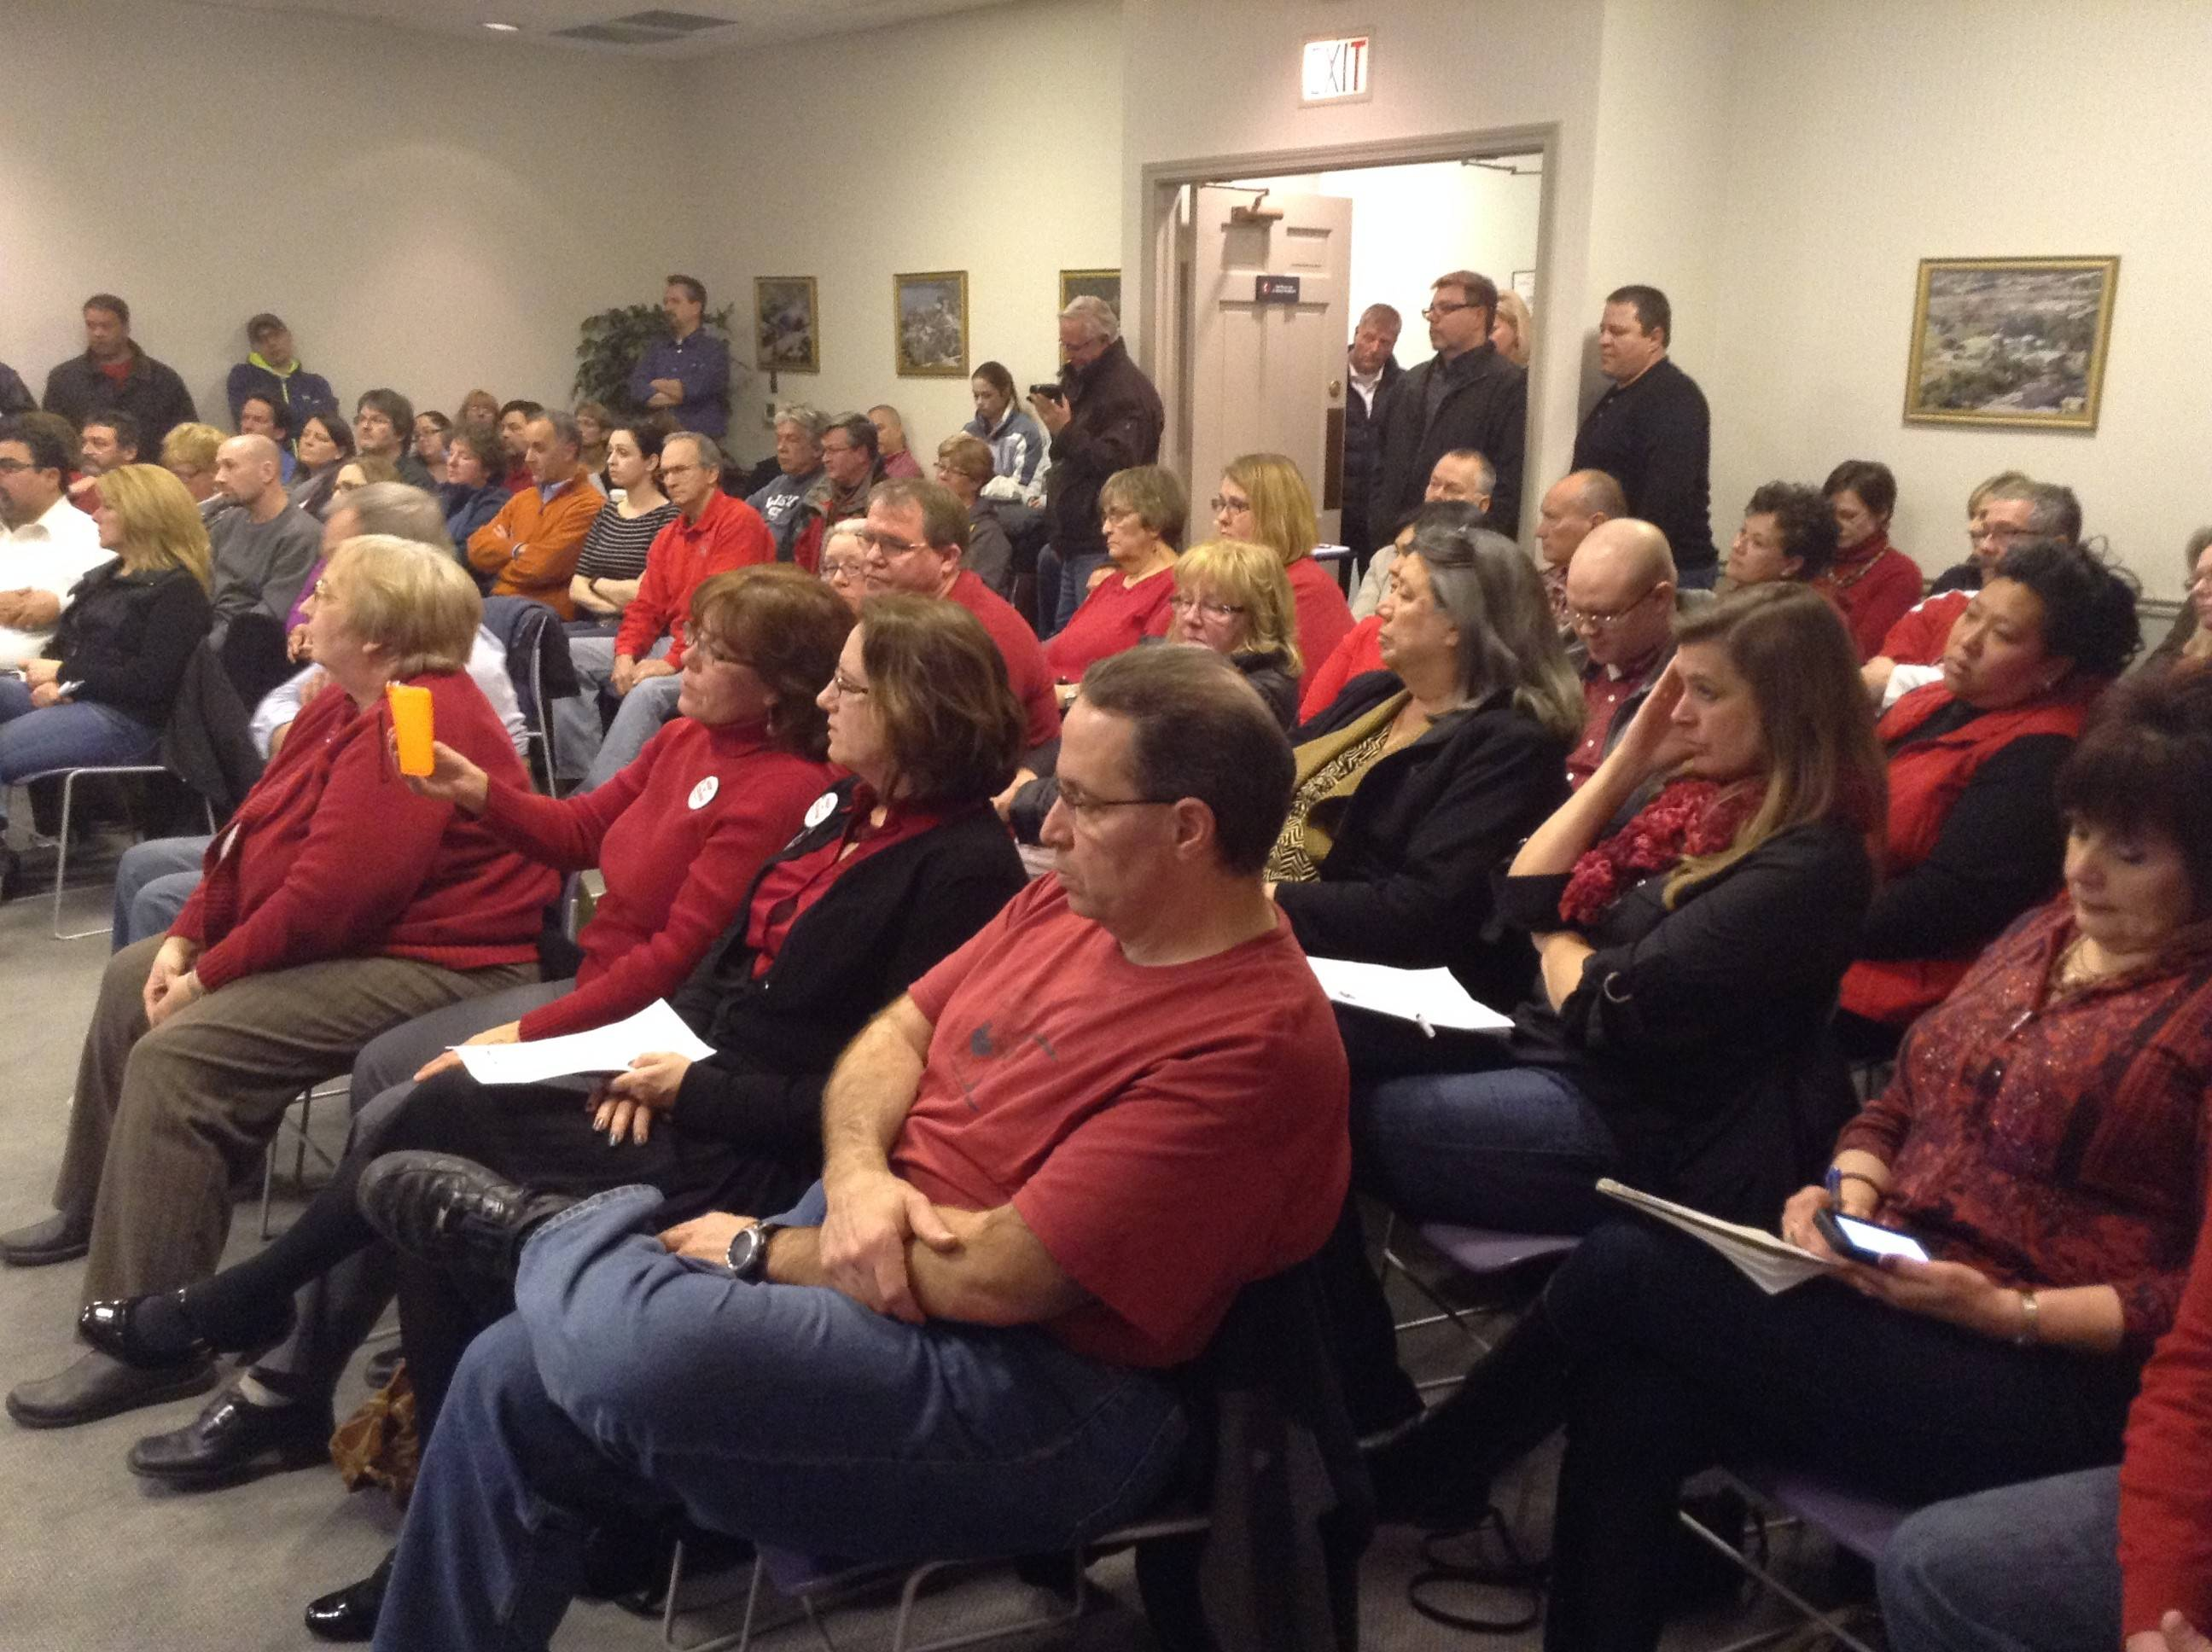 Wauconda residents urge board to keep 911 center